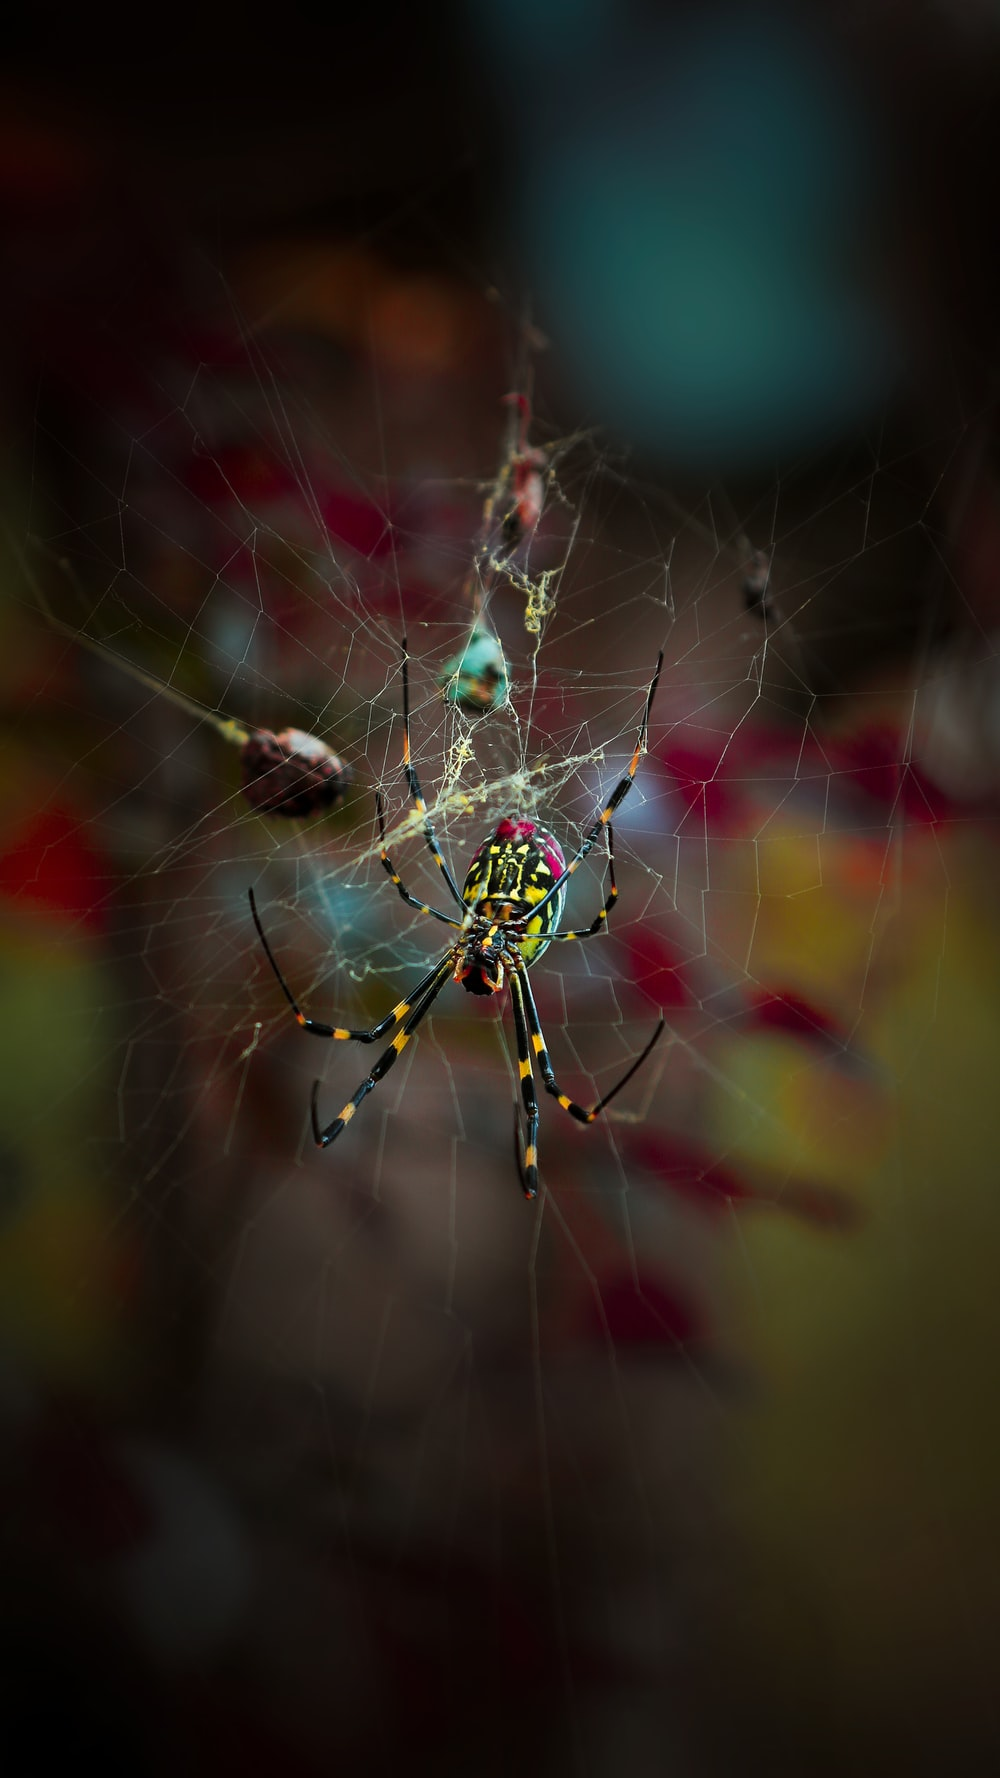 green and yellow spider on web in close up photography during daytime